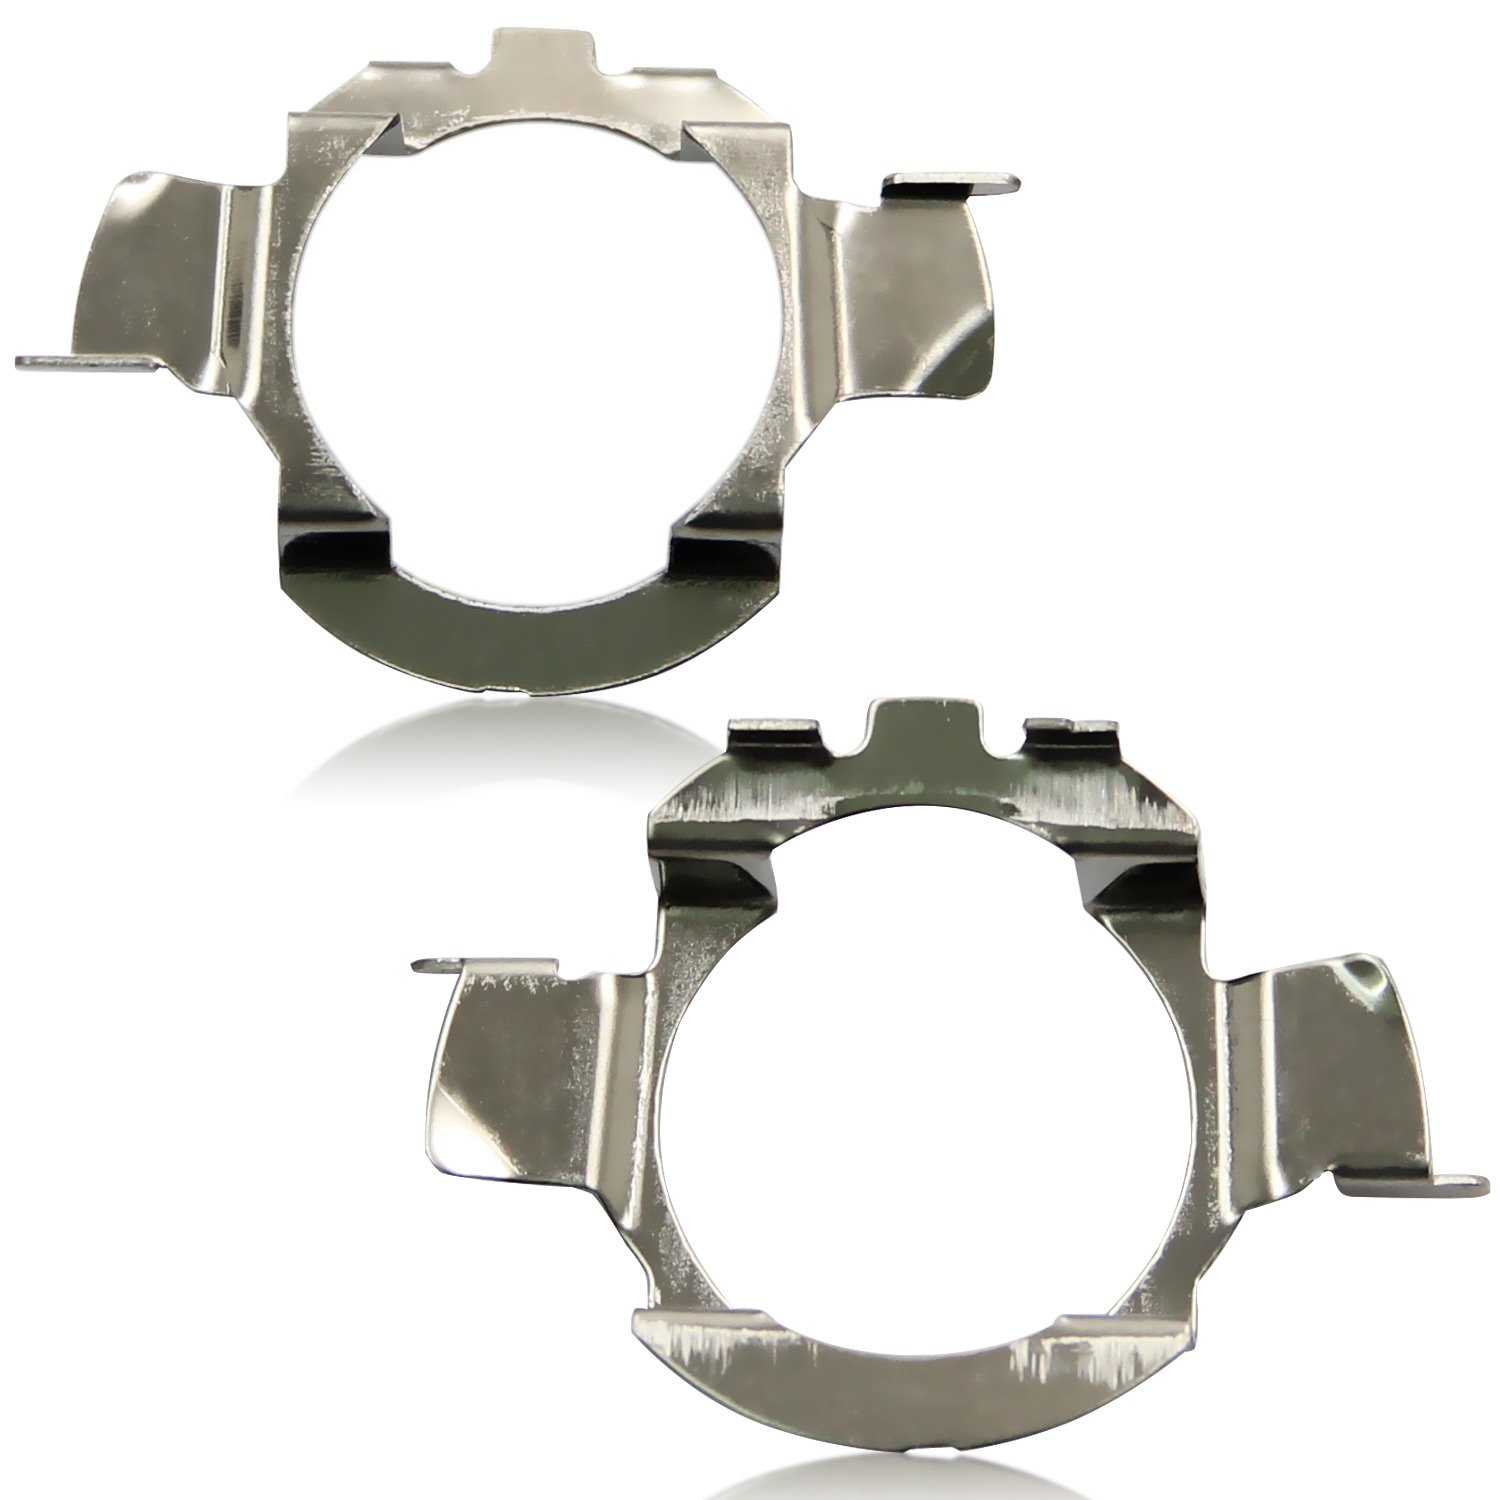 2 Pieces Win Power H7 LED Bulb Base Clips Adapter Holder Retainer Support Conversion Accessories